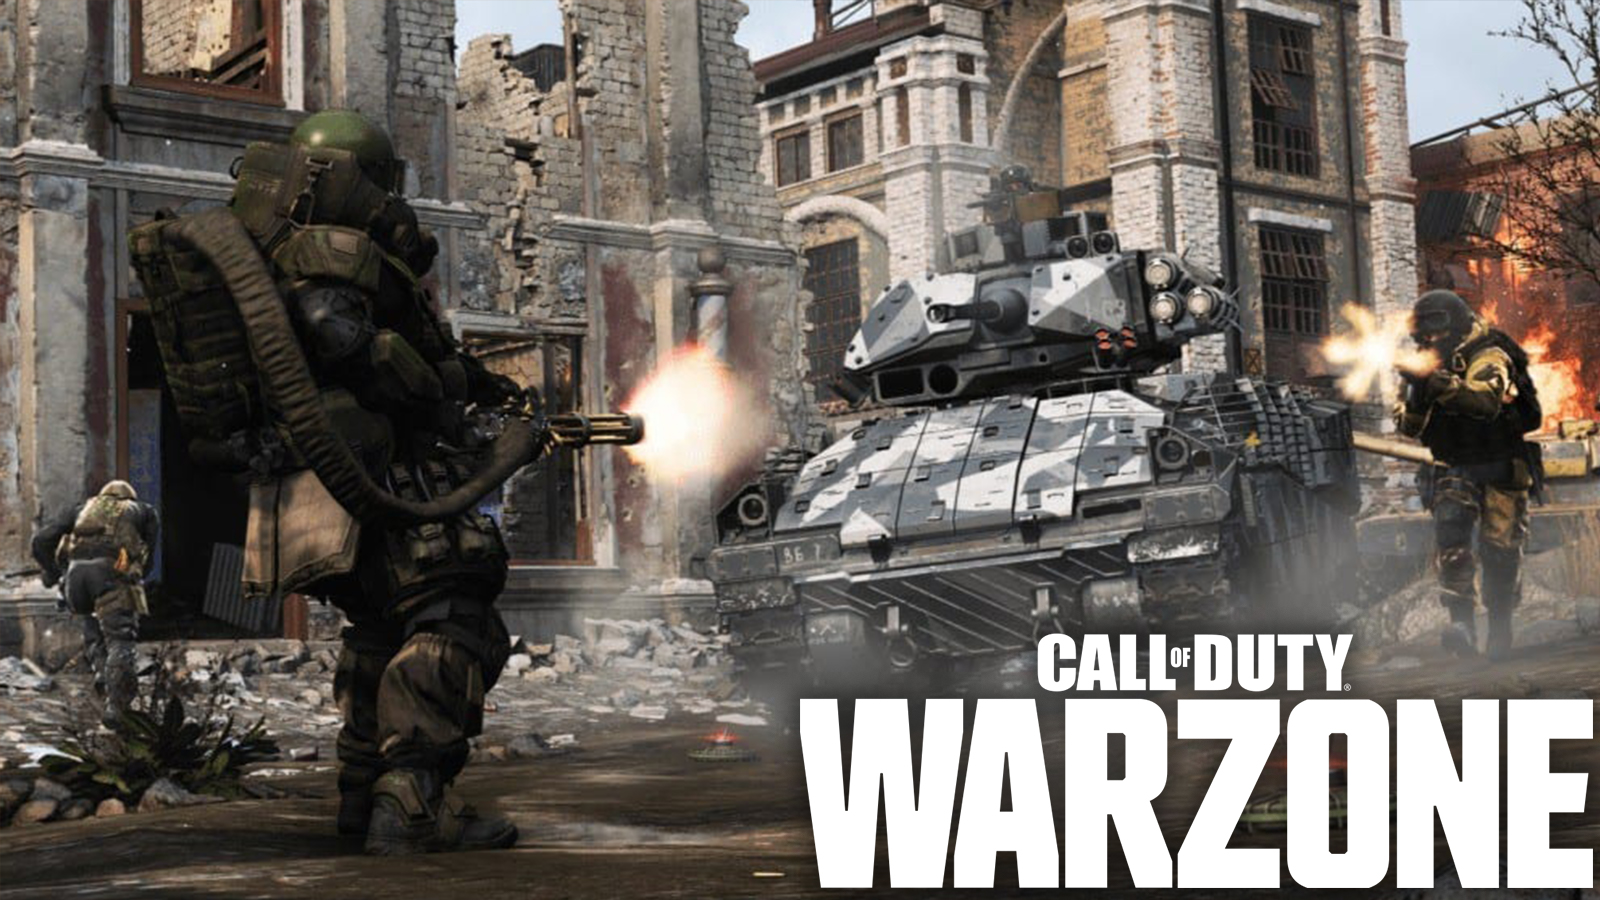 Season 5 Call of Duty Modern Warfare